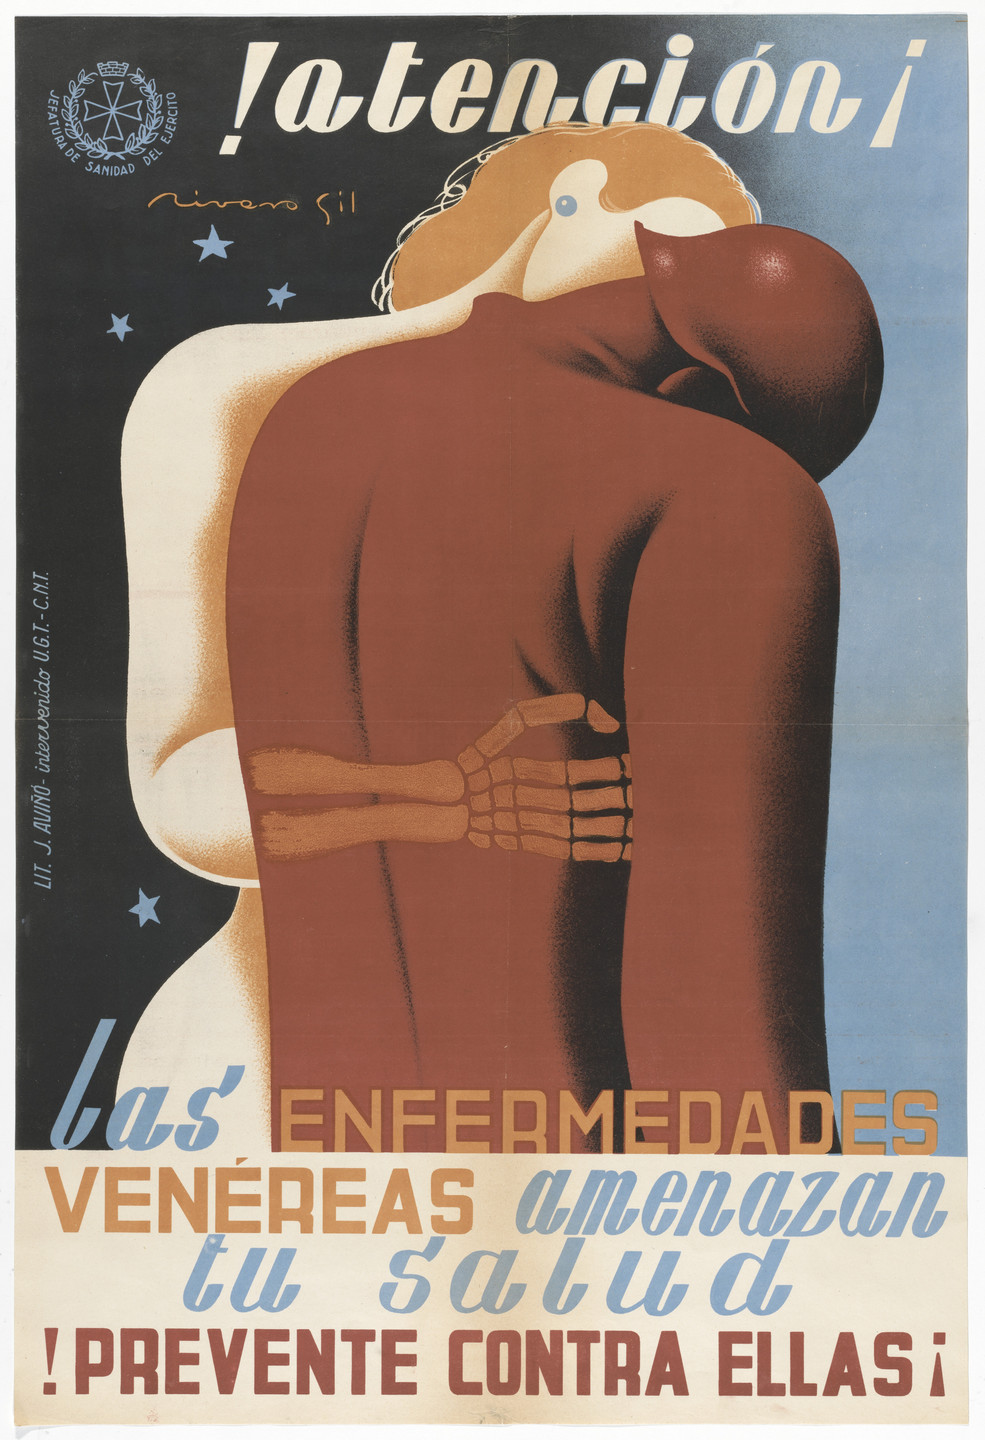 Francisco Rivero Gil. !Atención¡ Las Enfermedades Venéreas Amenazan Tu Salud. !Prevente Contra Ellas¡ (Attention! Venereal diseases threaten your health. Take precautions against them!). 1936–1939